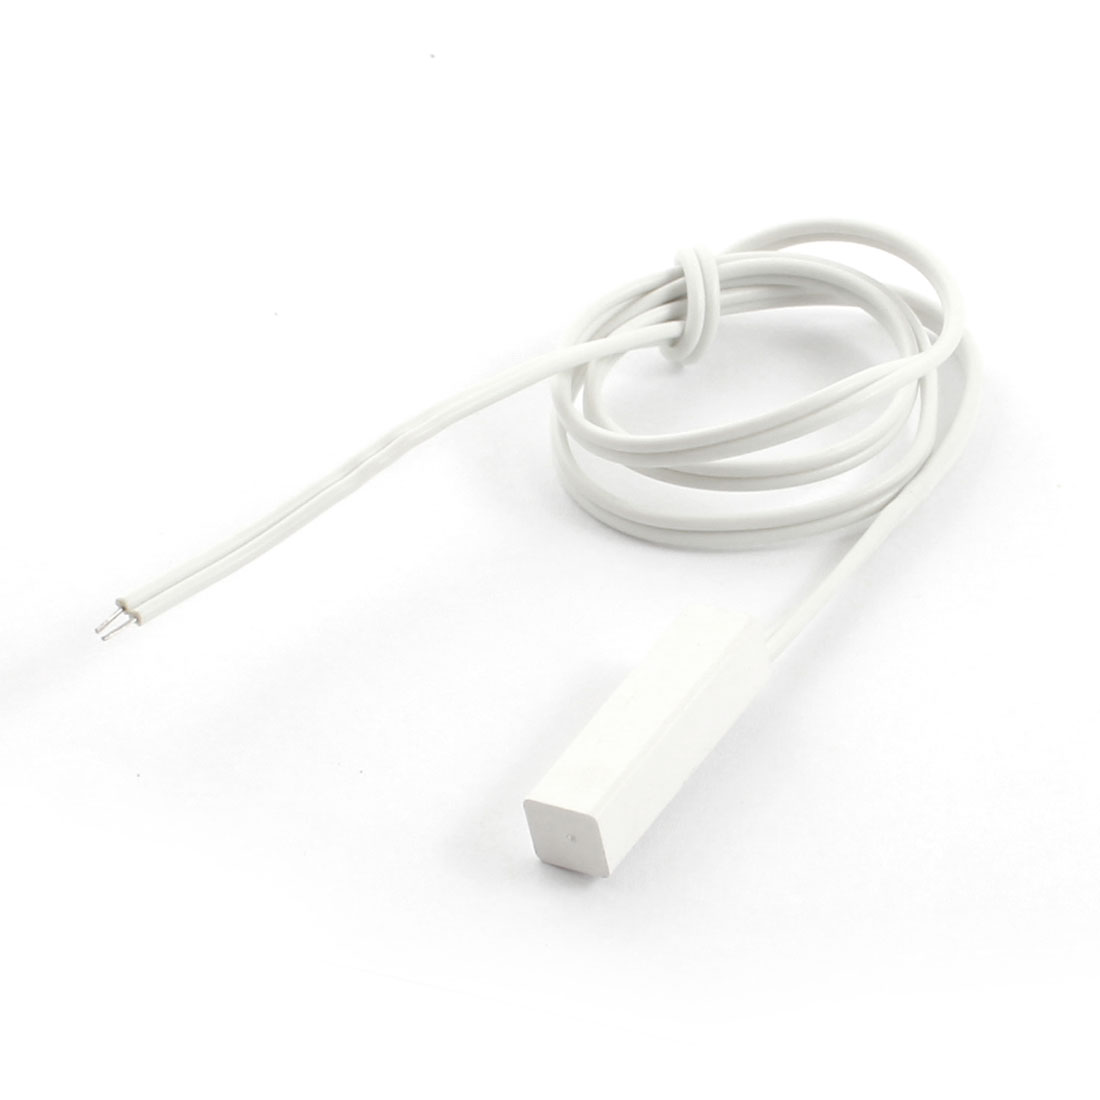 2K White Square Head General Purpose Refrigerator Freezer Temperature Sensor 50cm Length for Hier